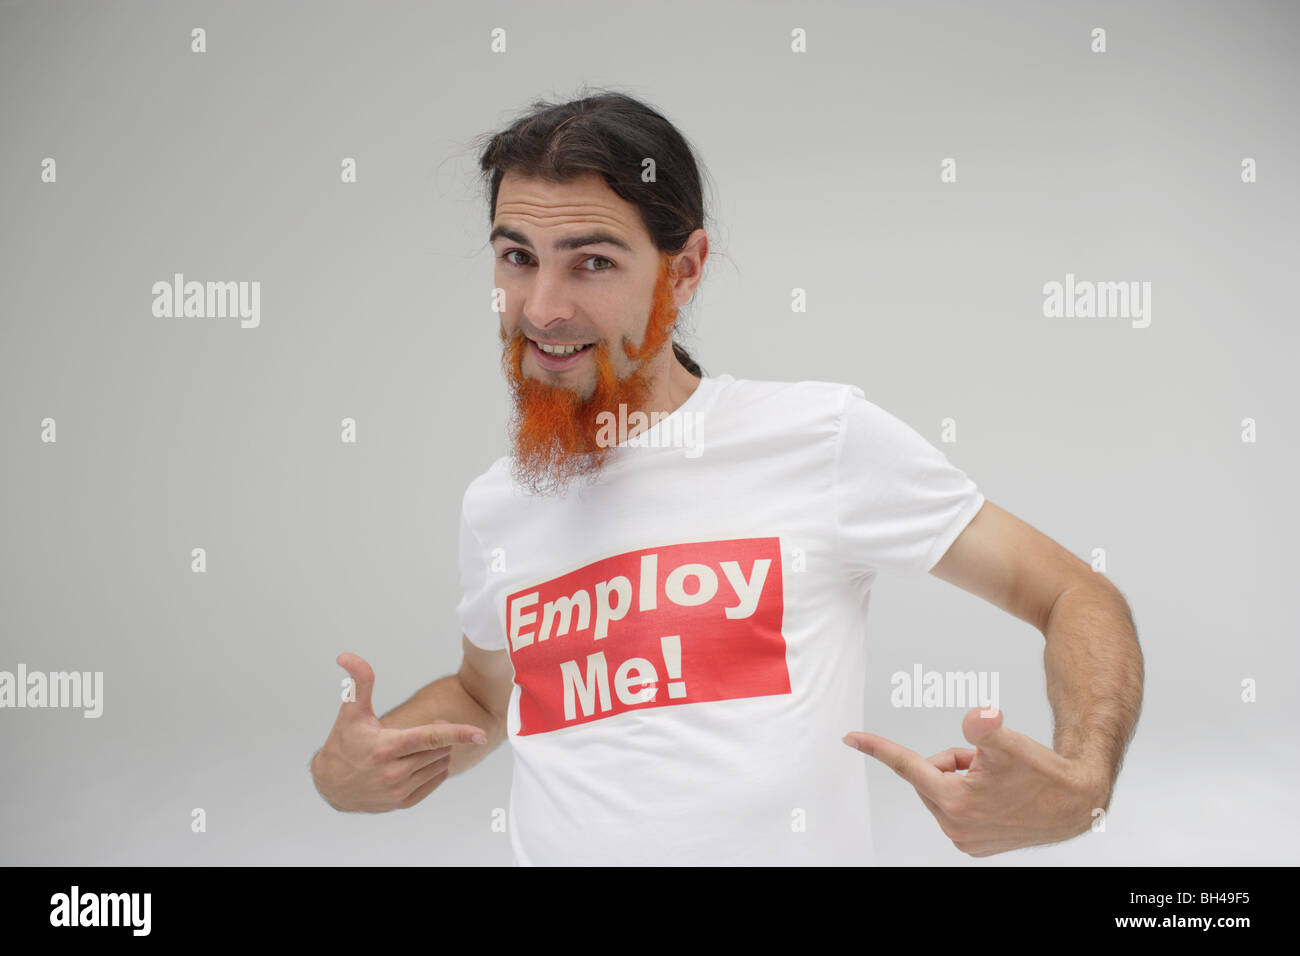 A young man pointing to his t-shirt with the message 'Employ Me!' printed over it, smiling - Stock Image